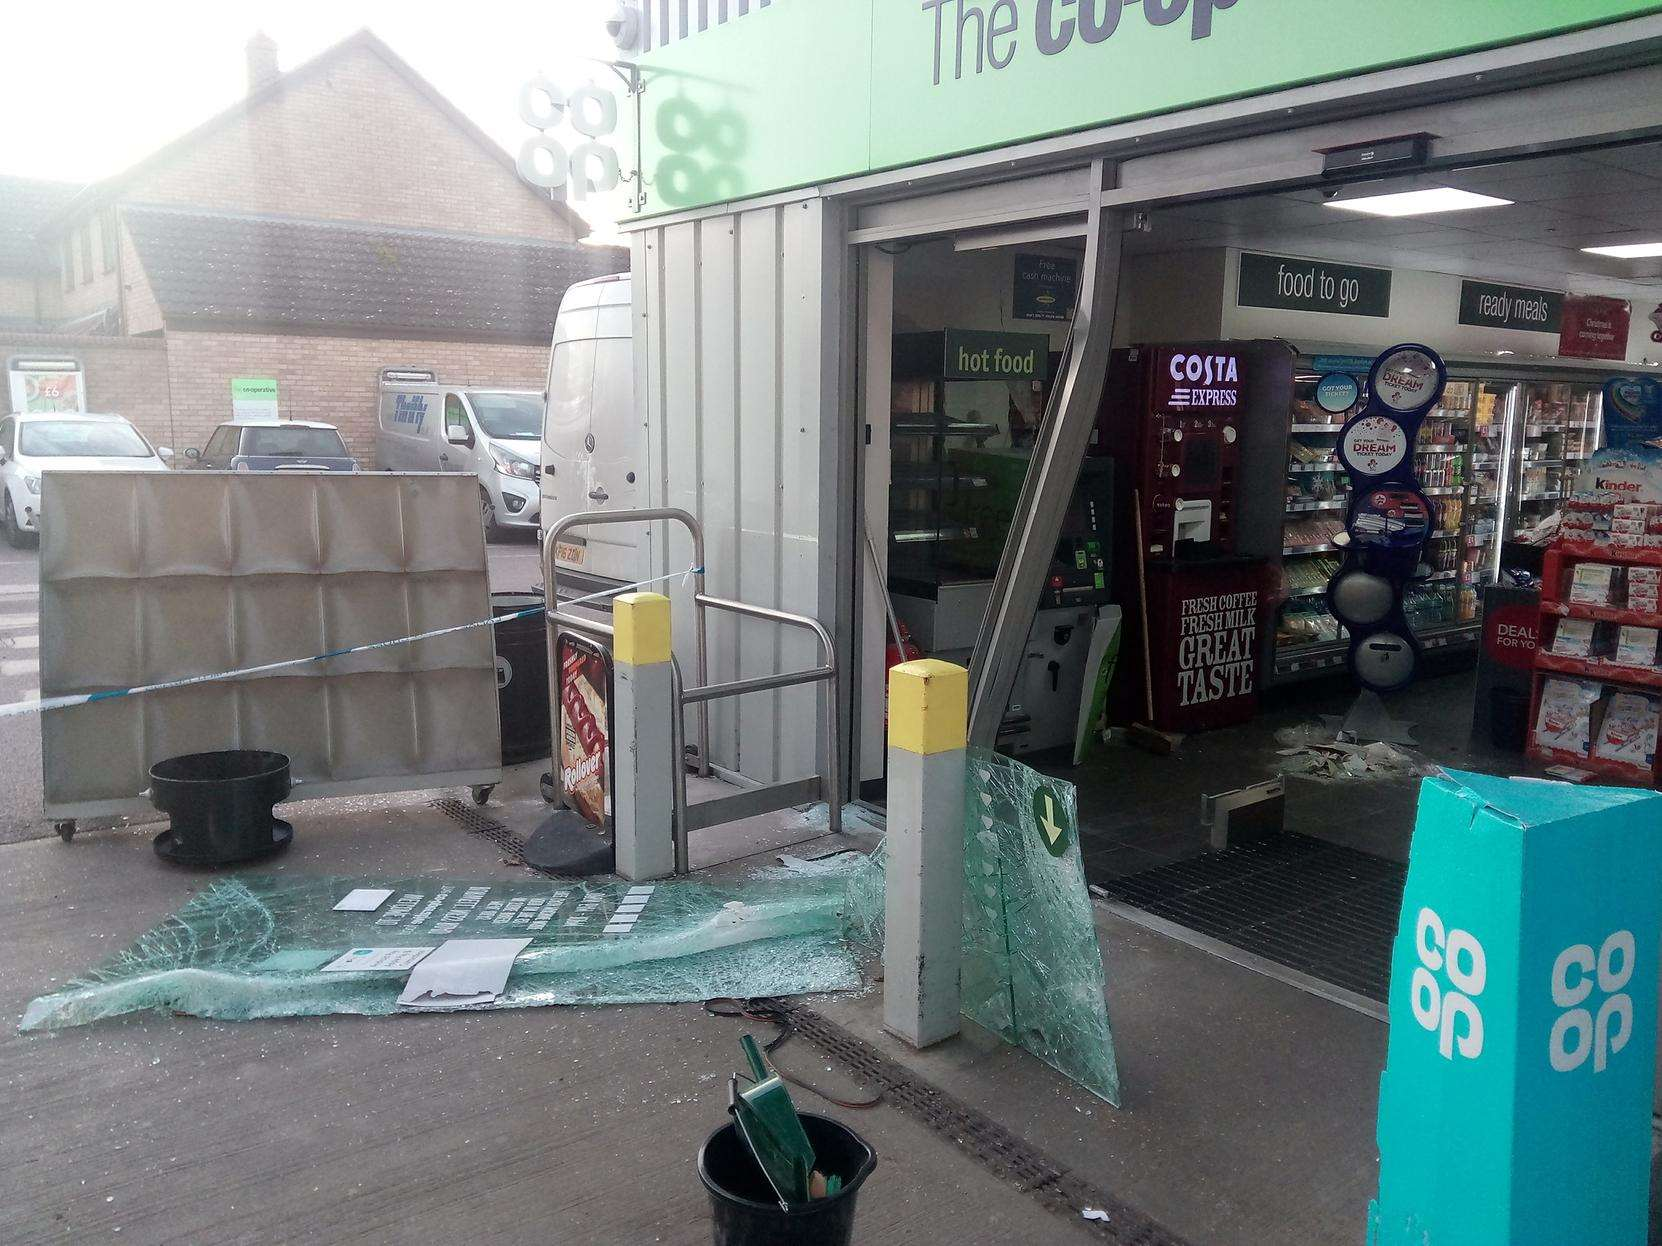 The Ness Road Co-op petrol station that was ram raided in the early hours of the morning